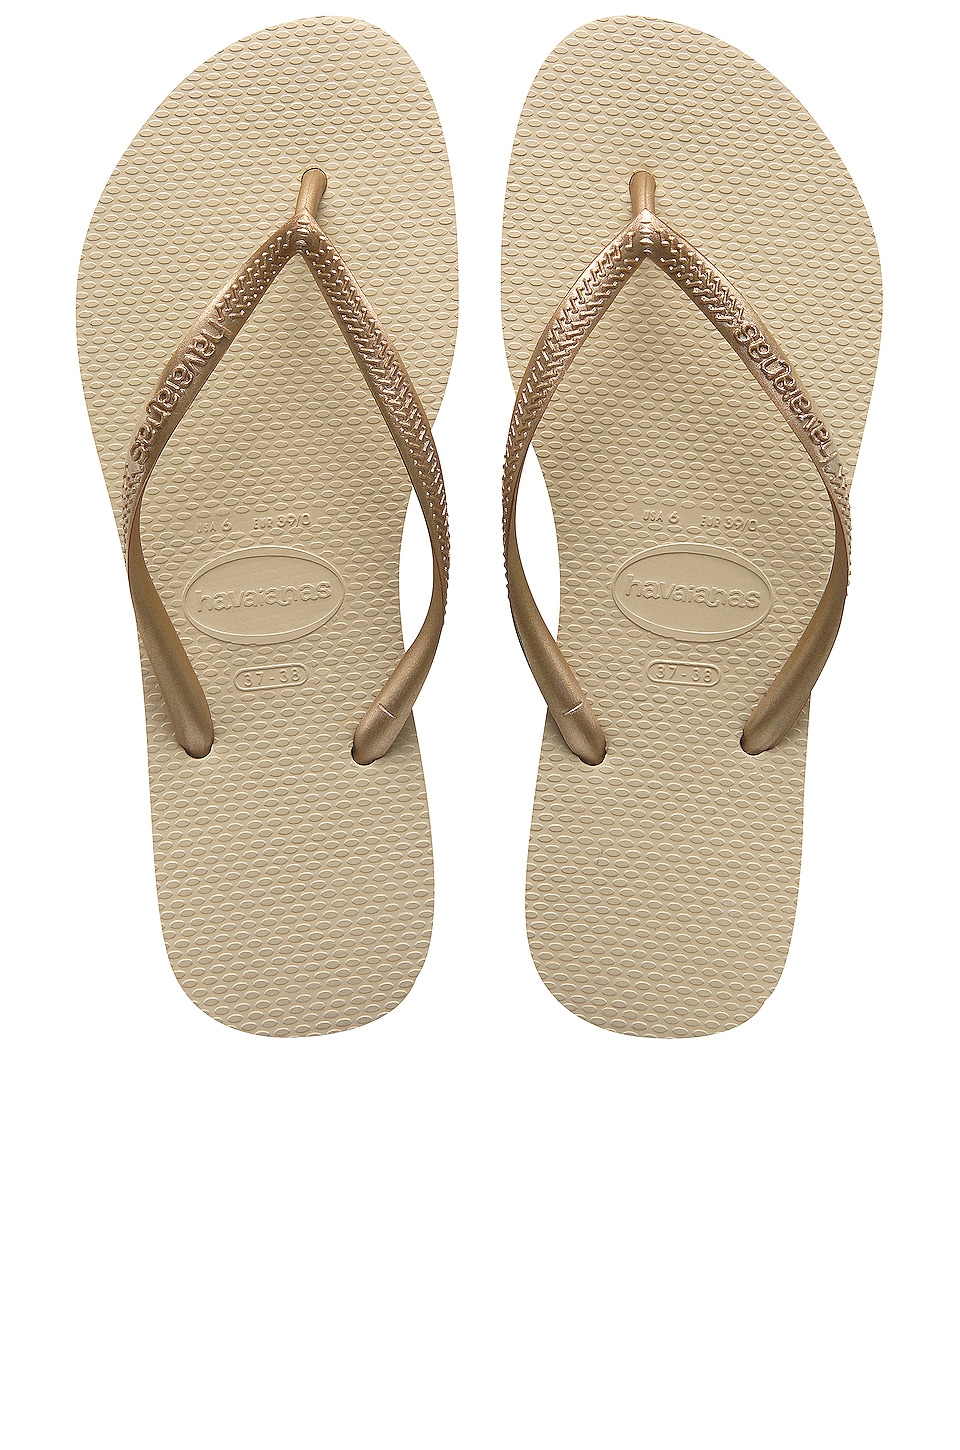 Havaianas Slim Flip Flop in Sand Grey & Light Golden